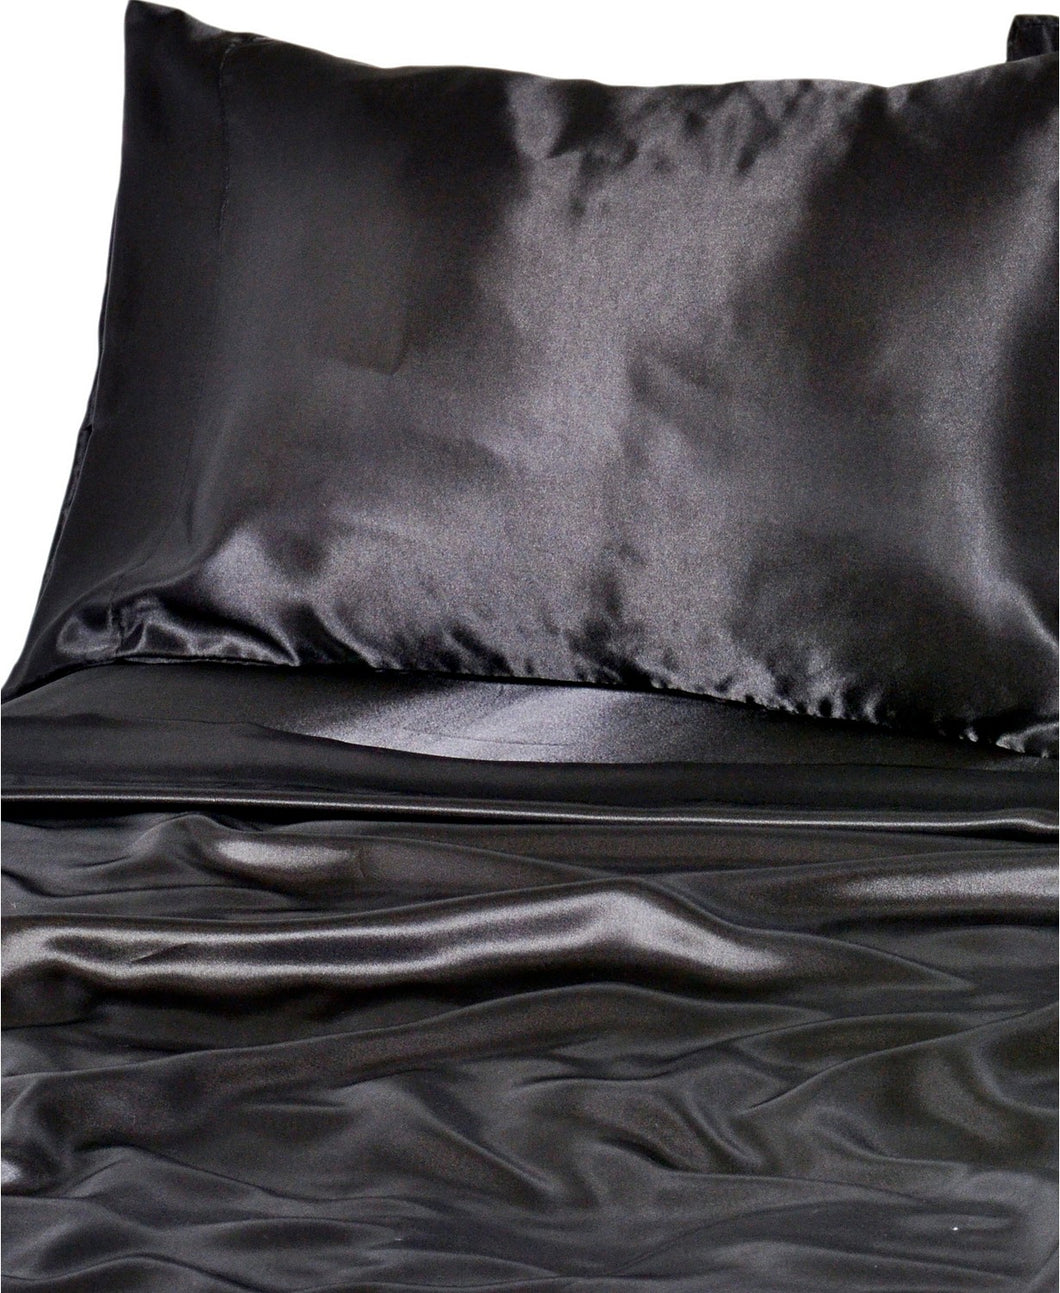 DF Elite Luxurious Satin Sheet Sets, (Black.)